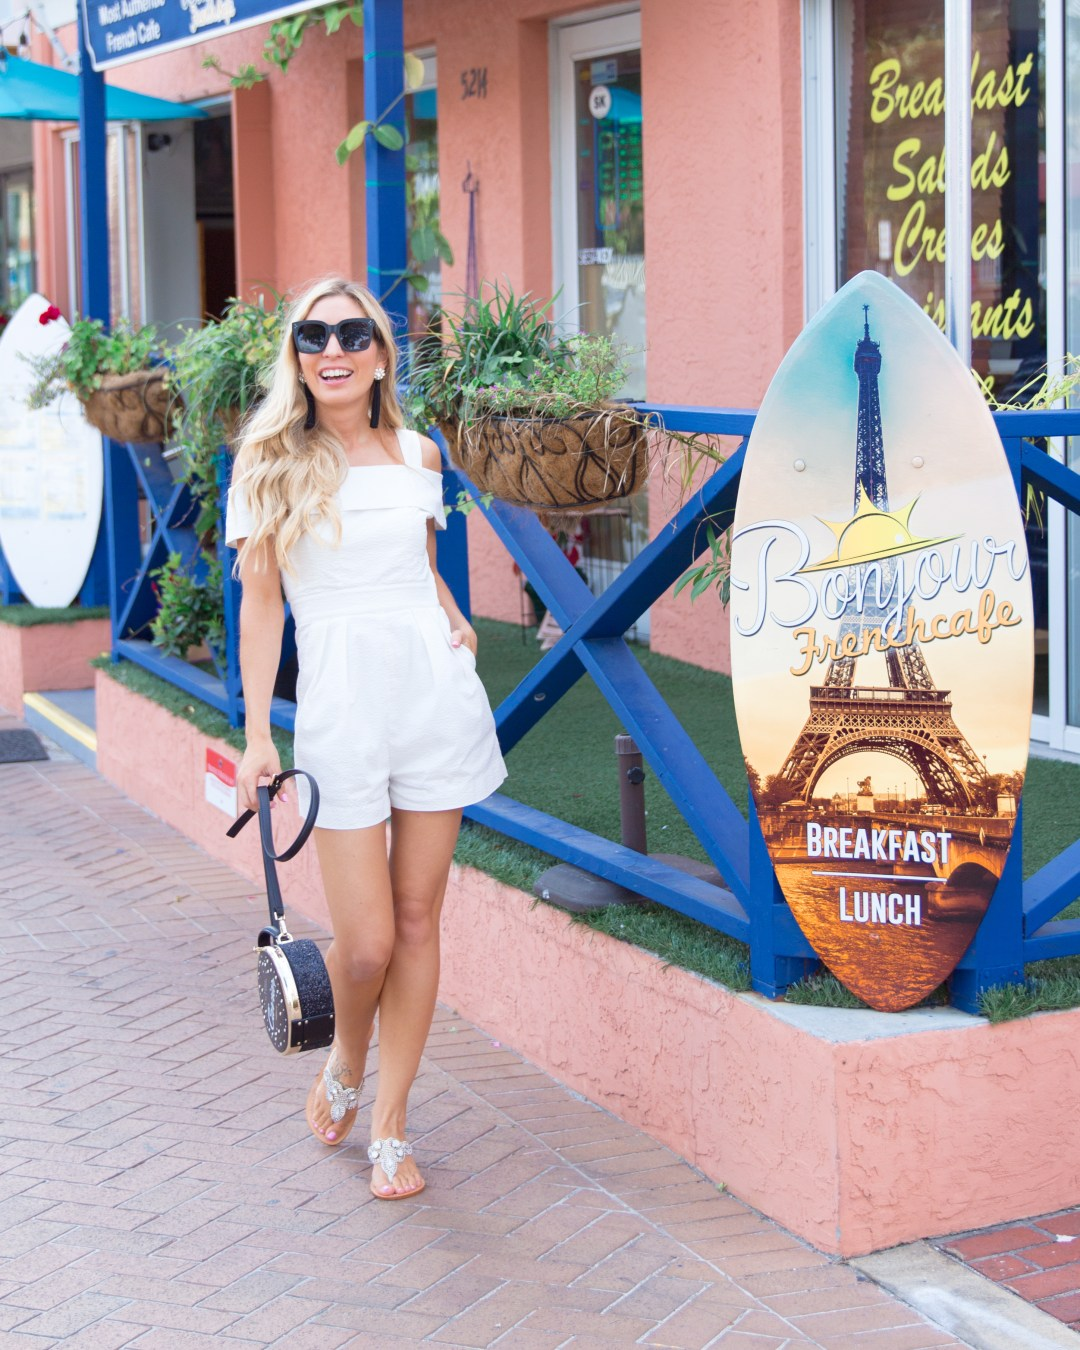 PASHA SANDALS BY THE SEA